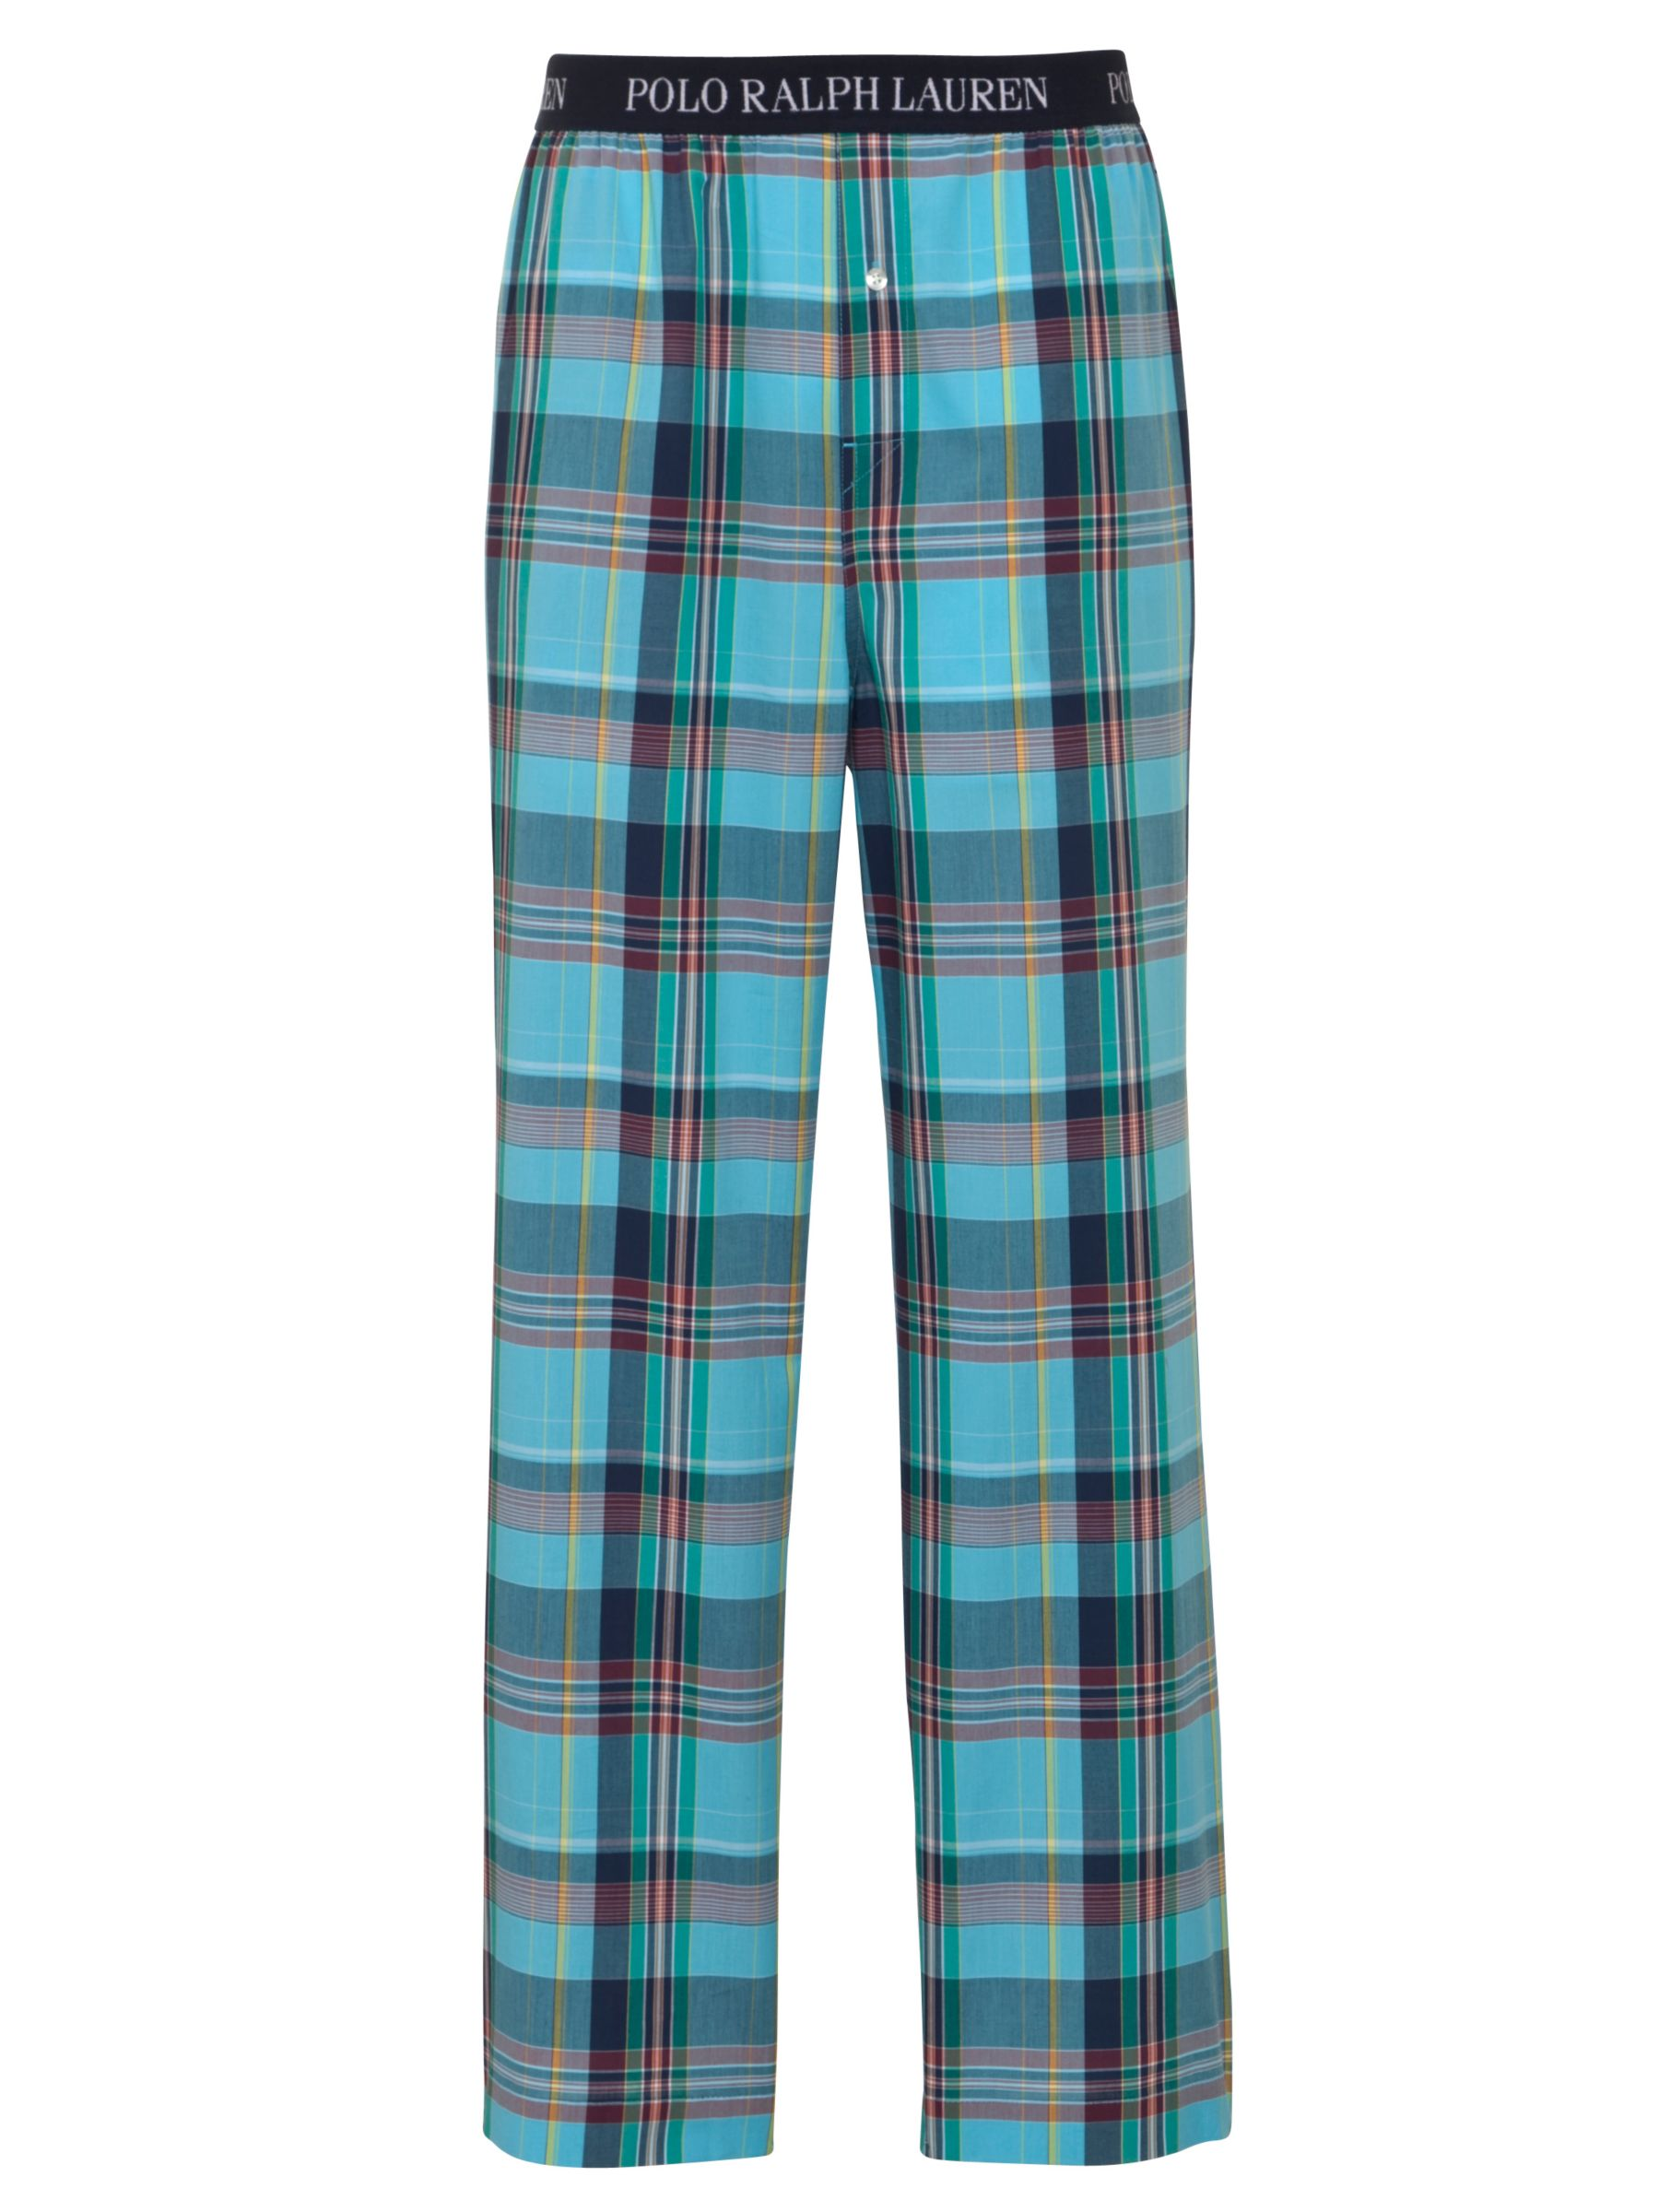 Polo Ralph Lauren 50's Check Lounge Pants